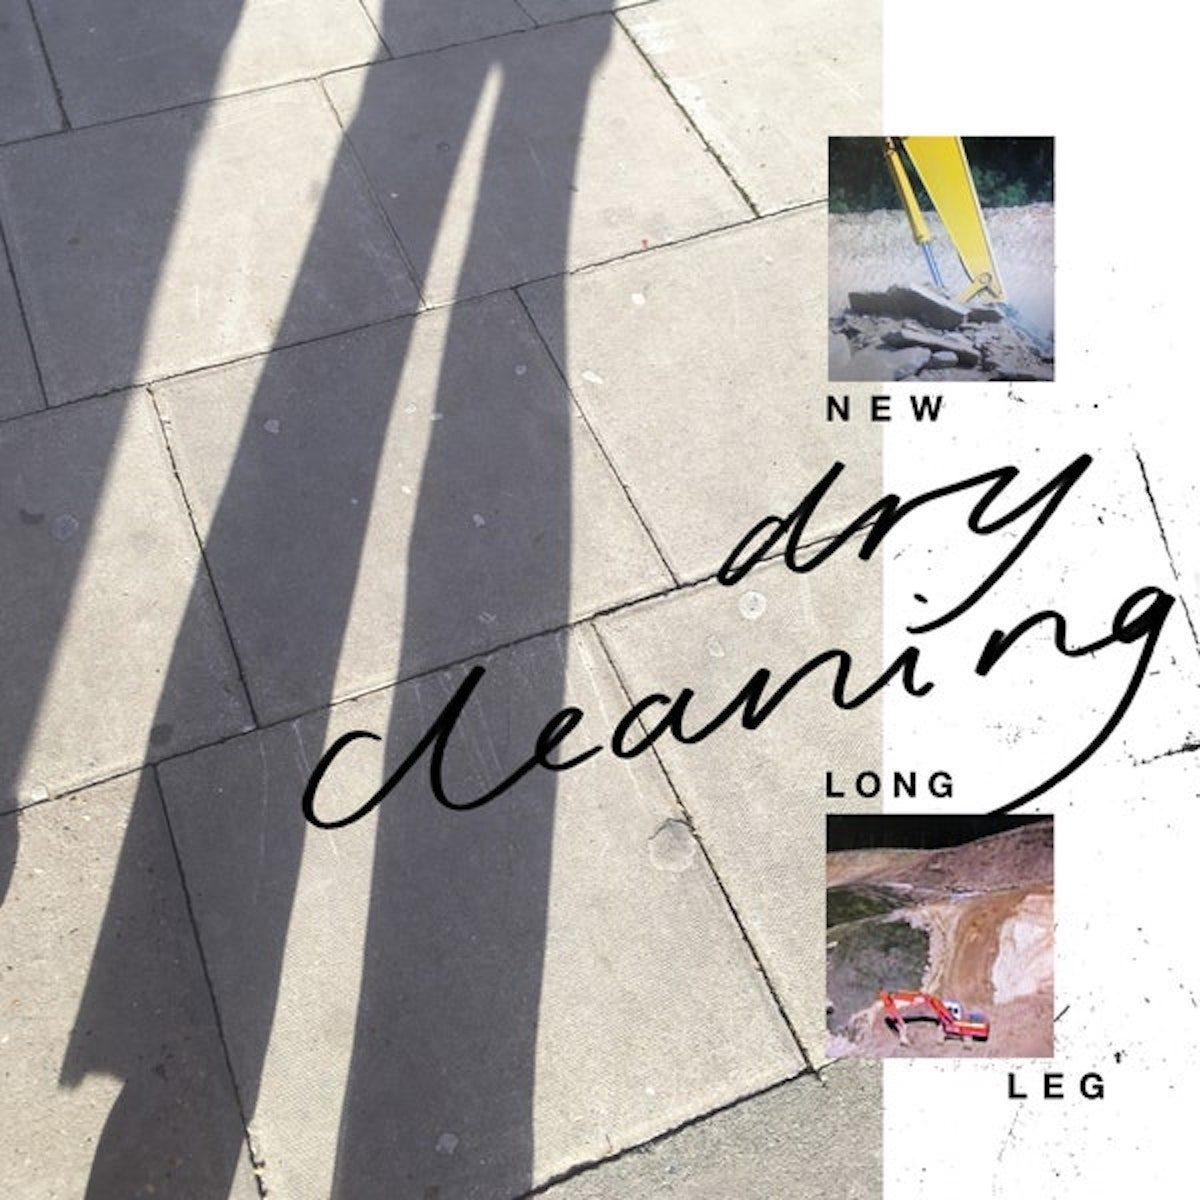 Dry-Cleaning-New-Long-Leg-1622476019